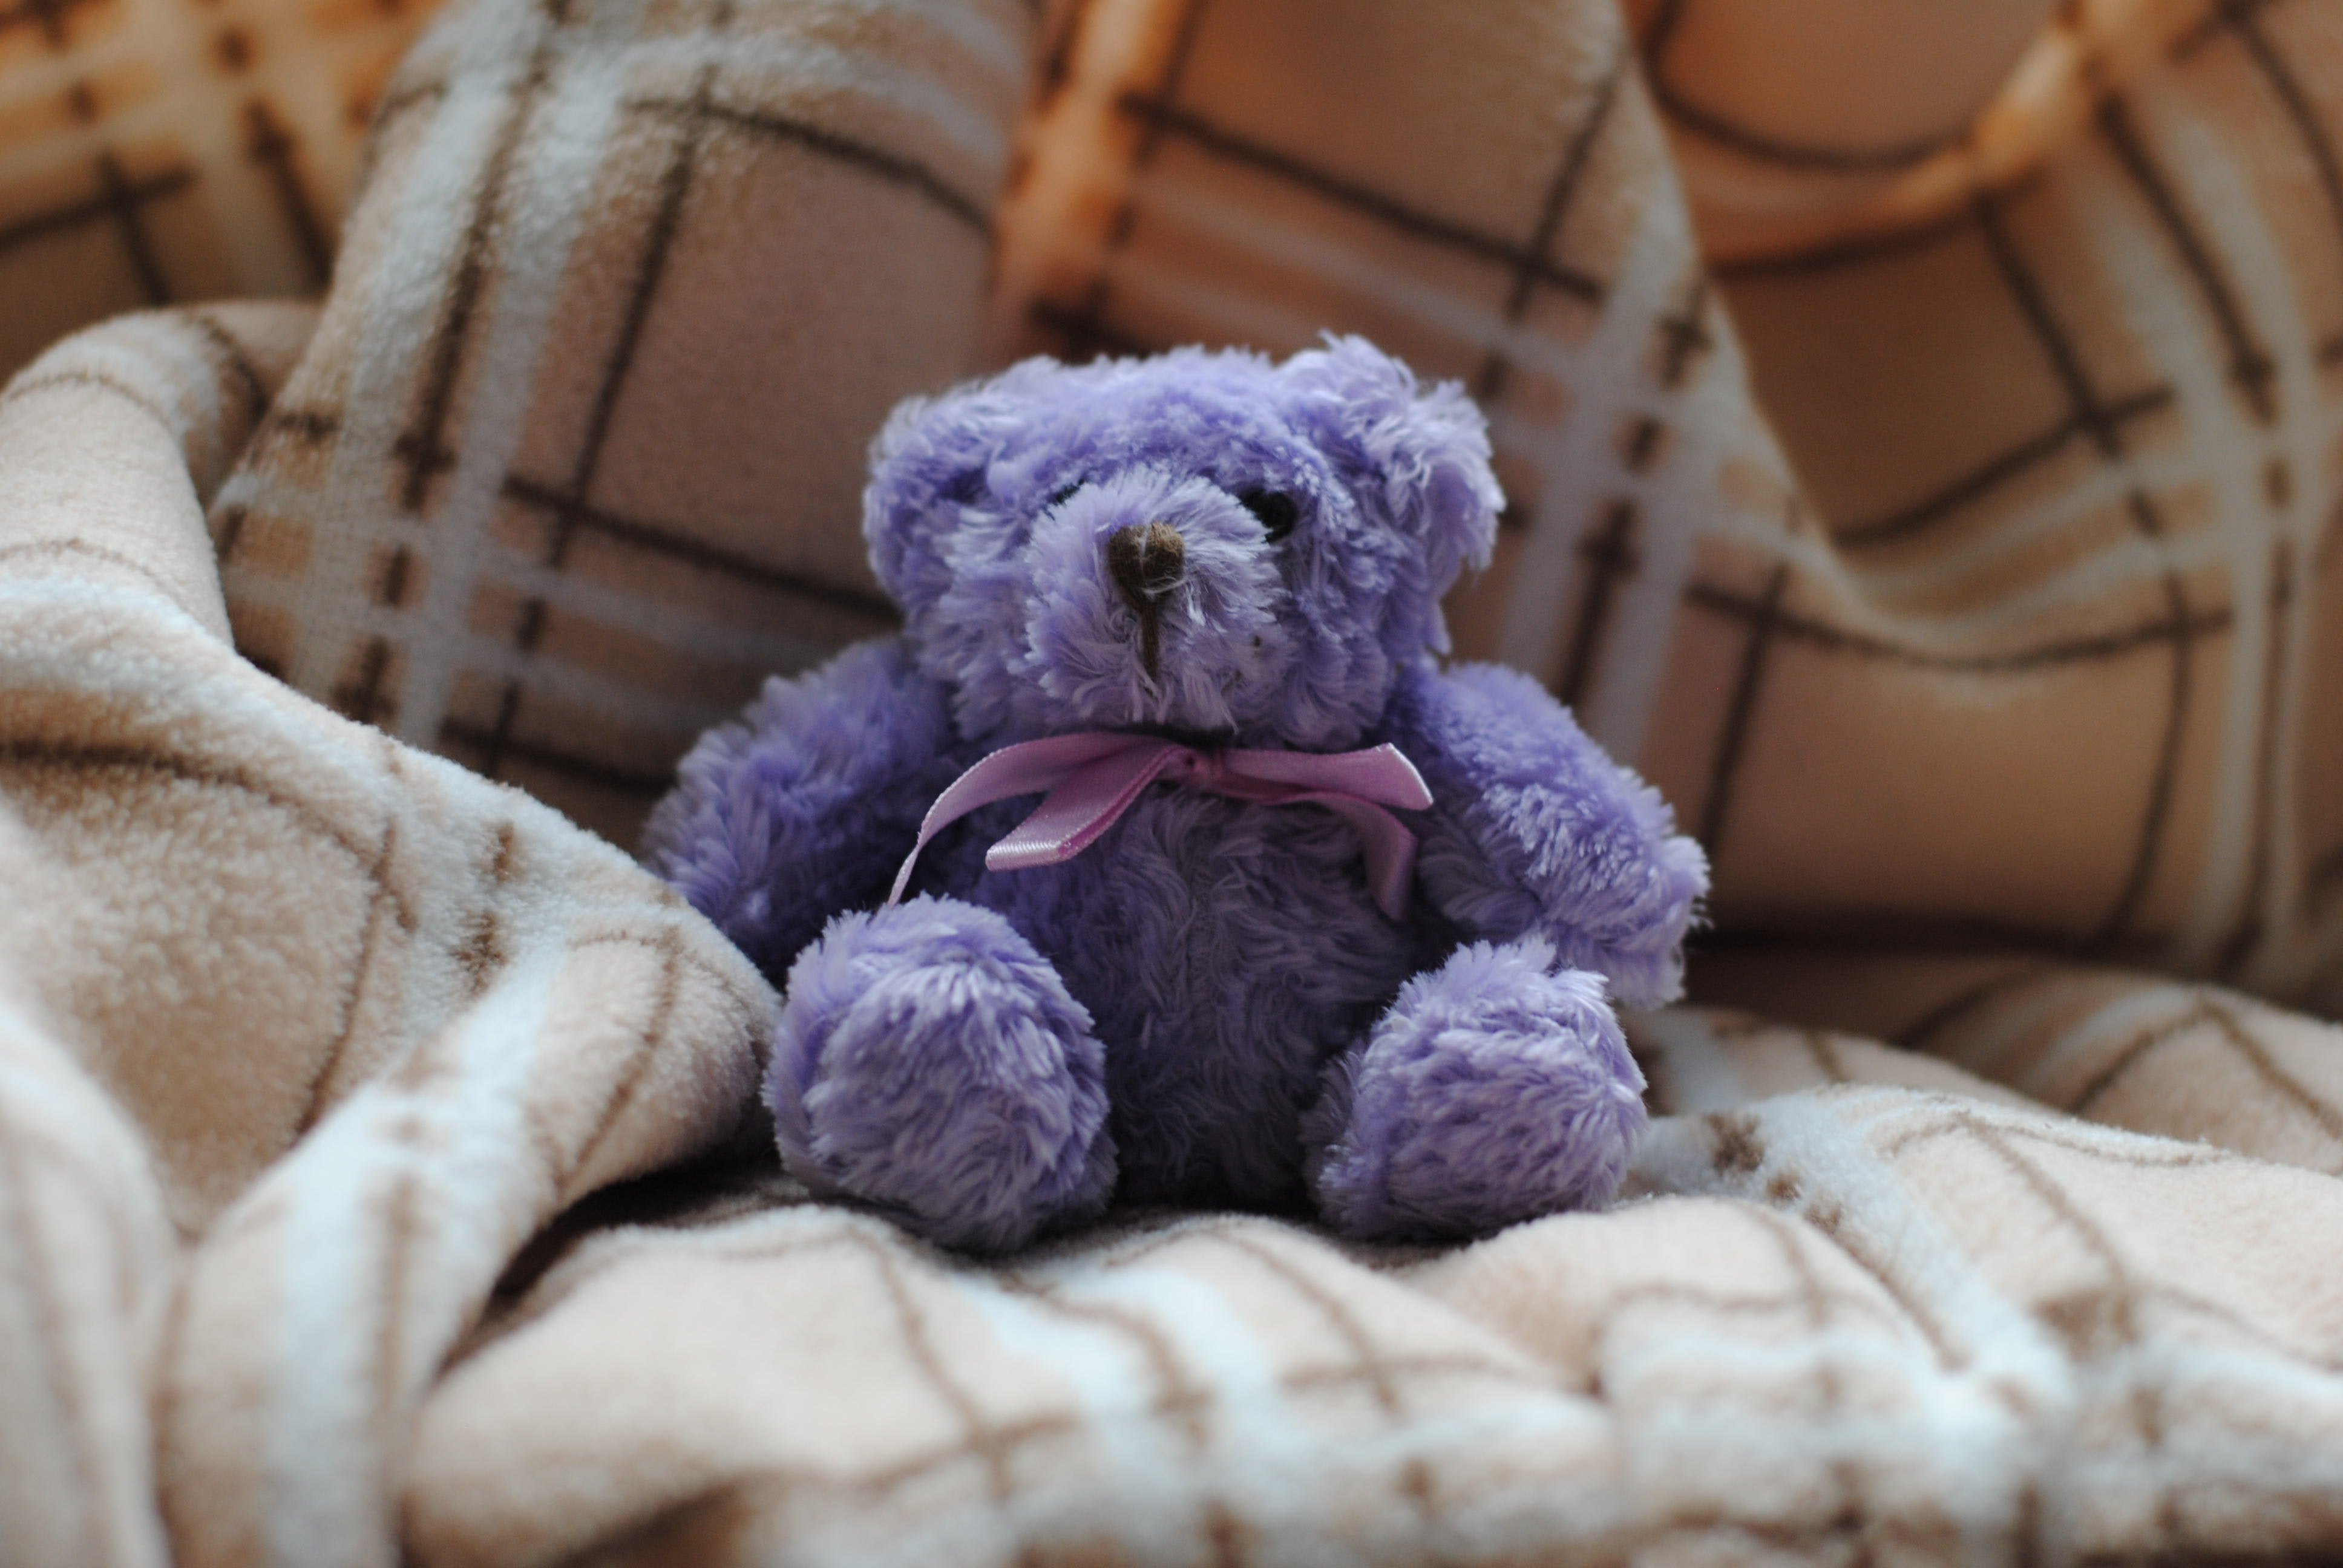 purple bear plush toy on beige and white plaid blanket